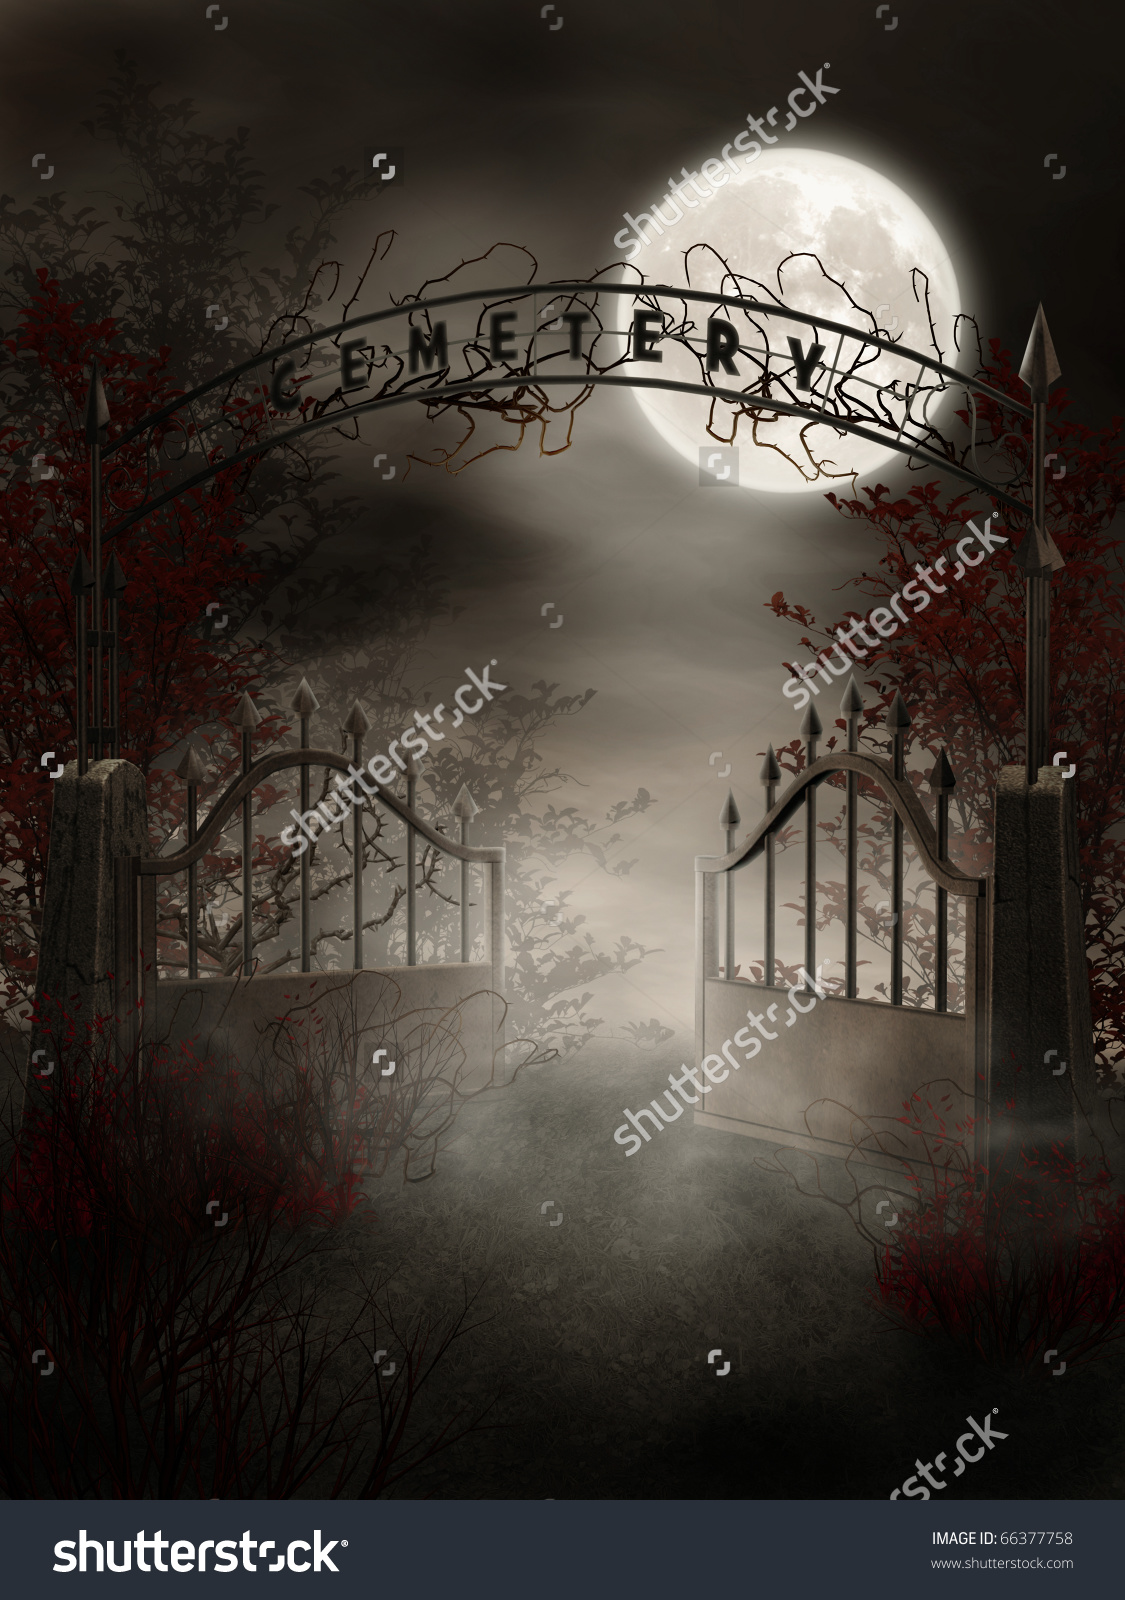 Gate clipart cemetery gates Cemetery clipart with and creepy